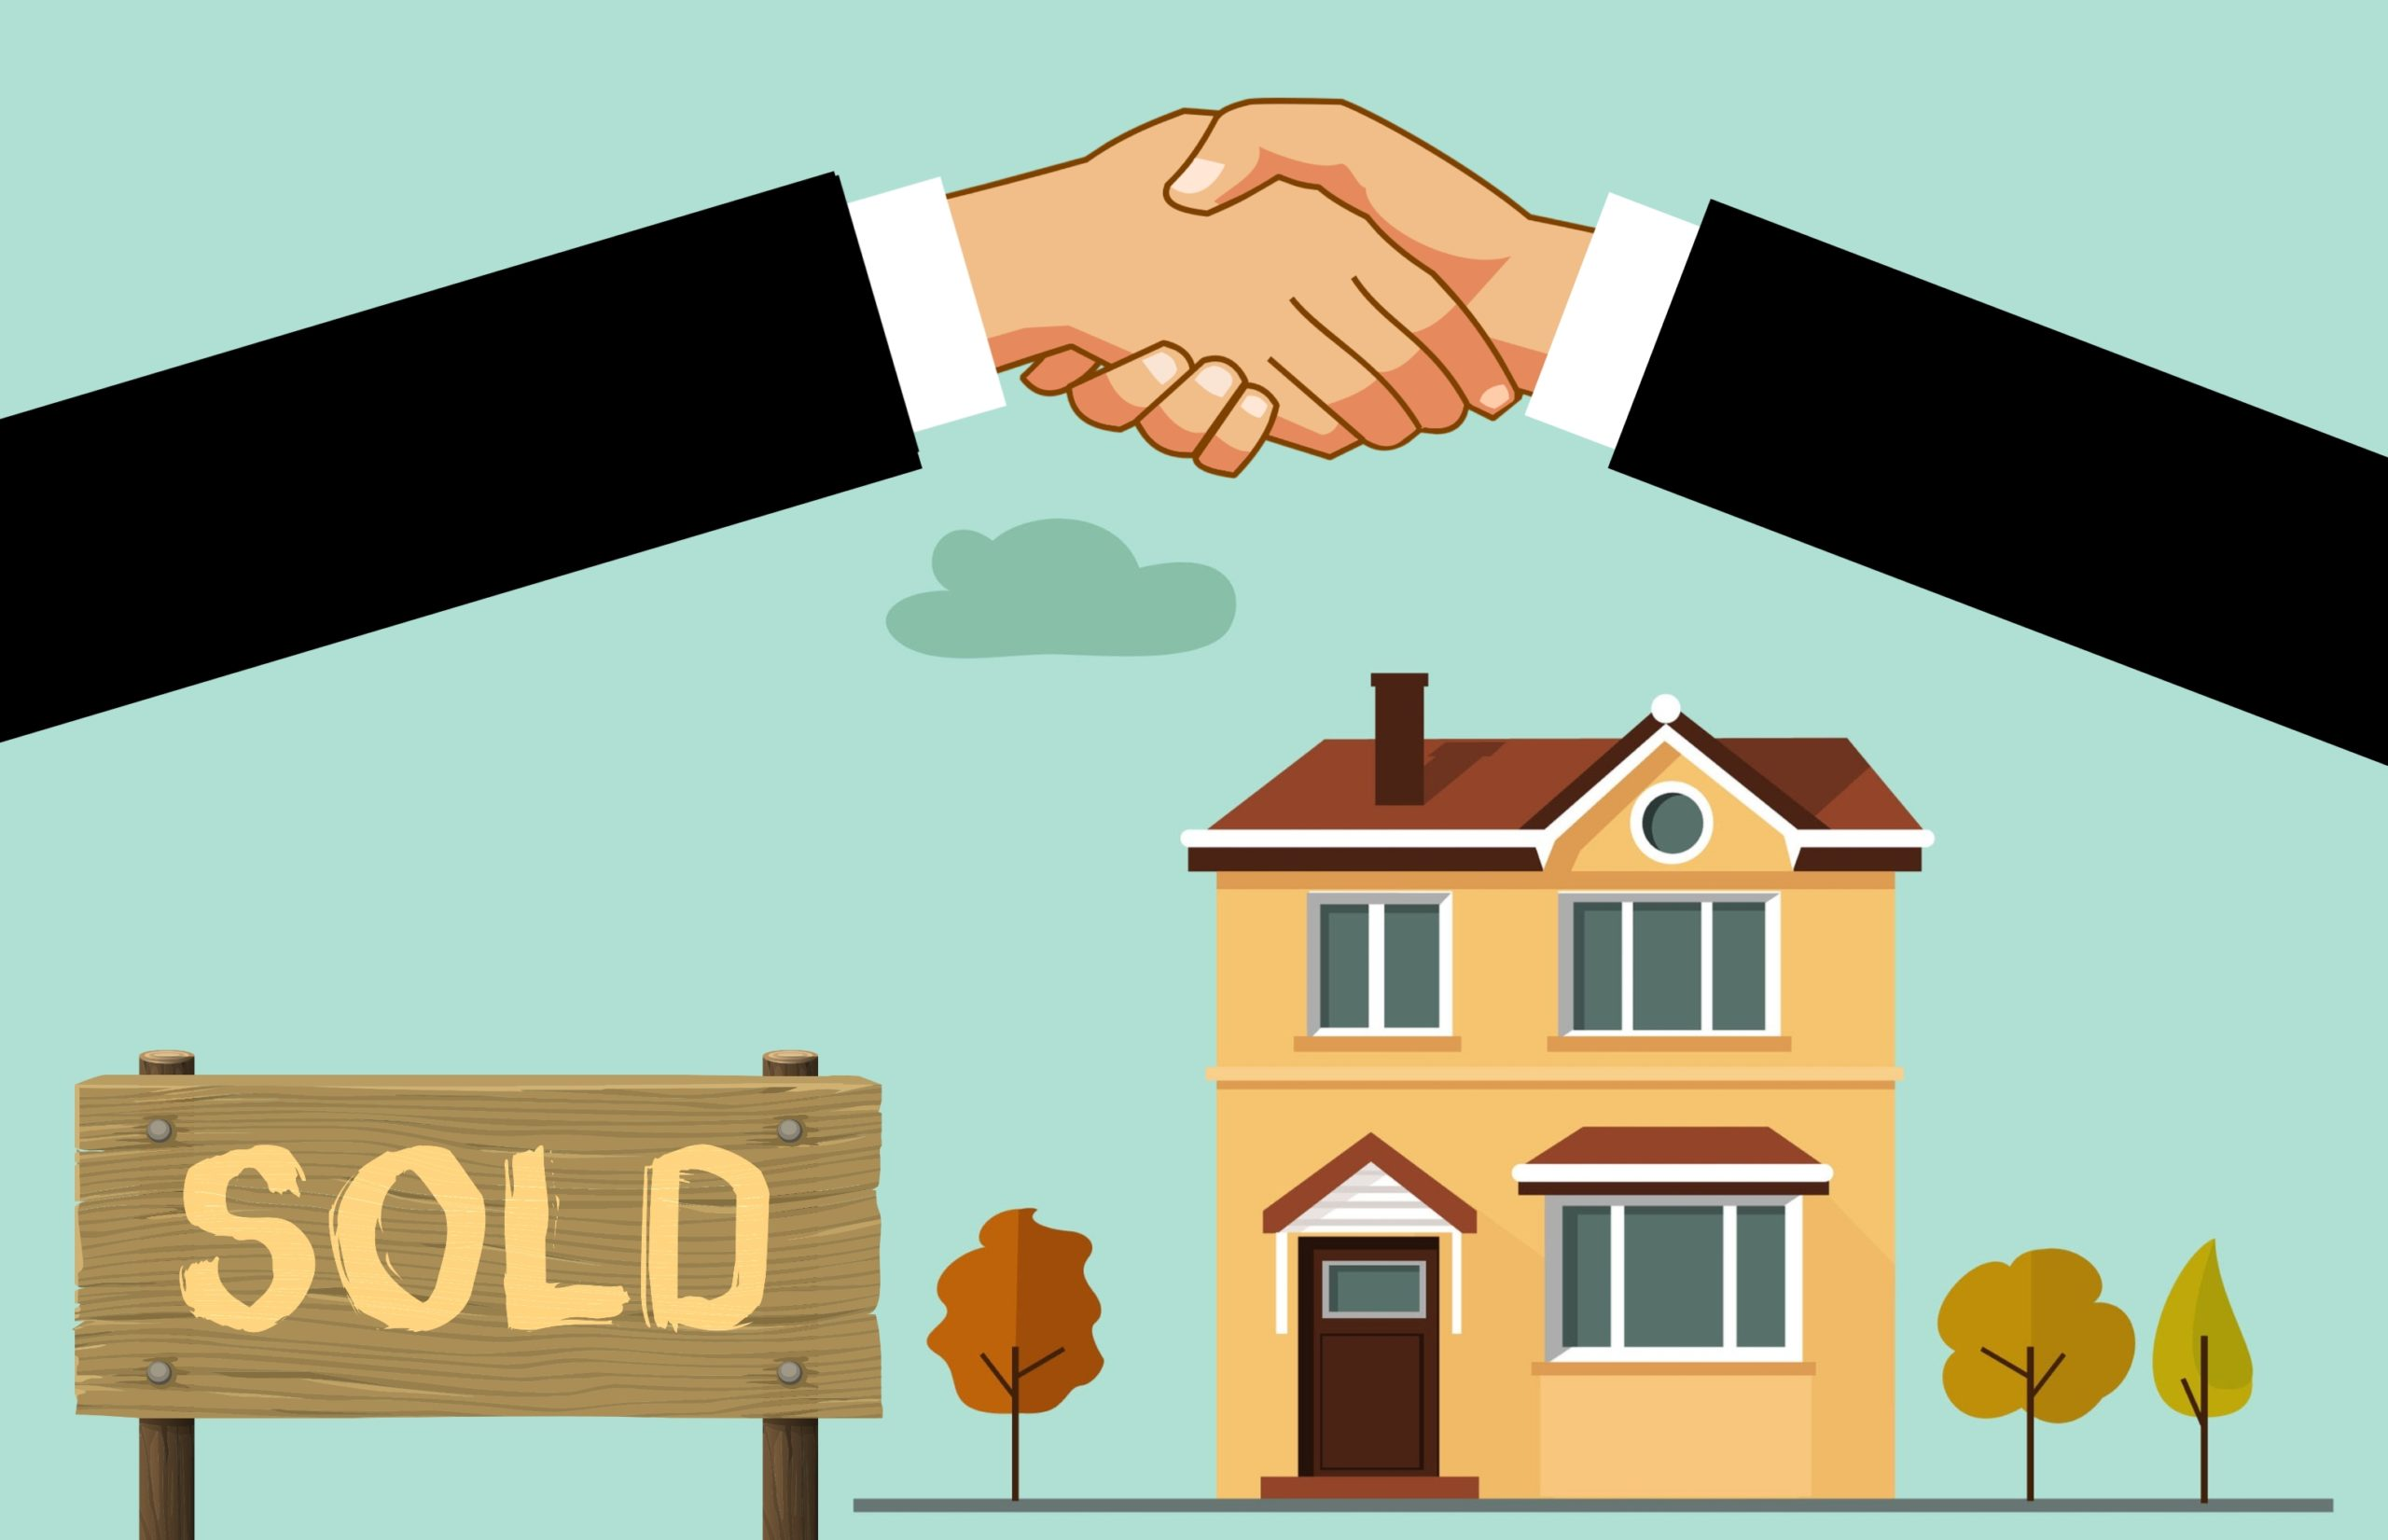 house mortgage home sold real estate 1586145 pxhere com  scaled.